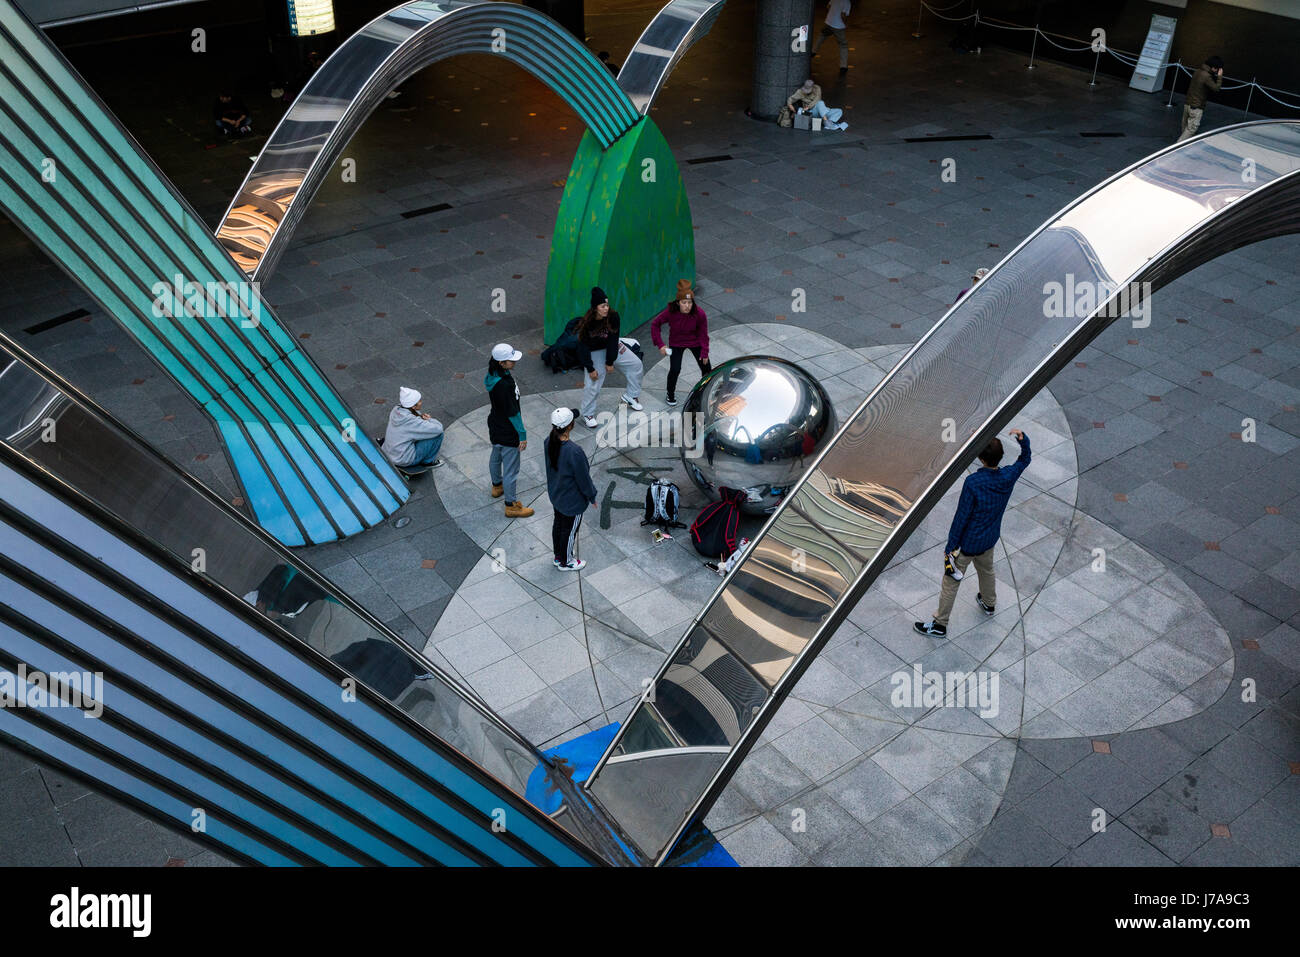 A group of teenagers practice their hip hop moves, while observing their reflection on the sphere in the centre - Stock Image